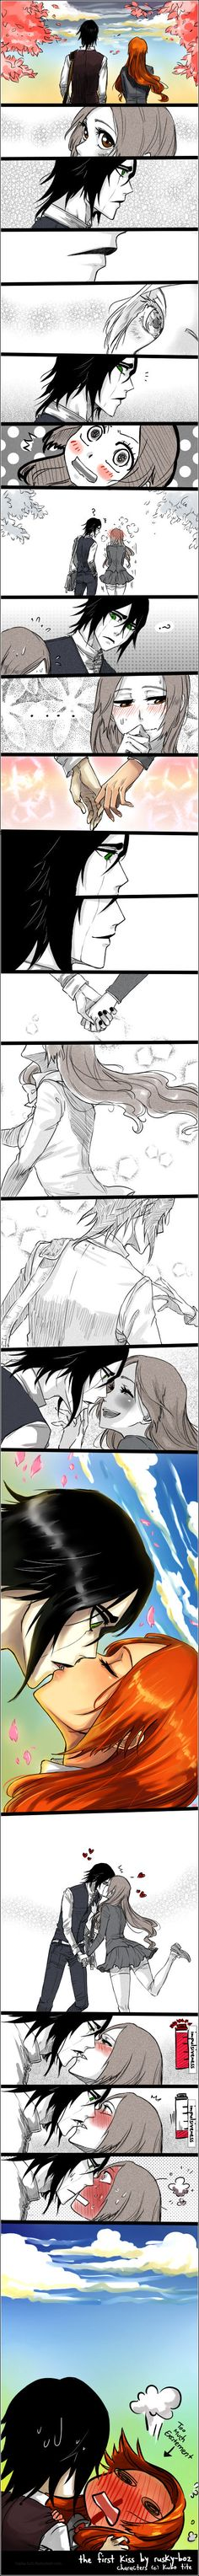 Ulquiorra and Orihime kiss - Bleach